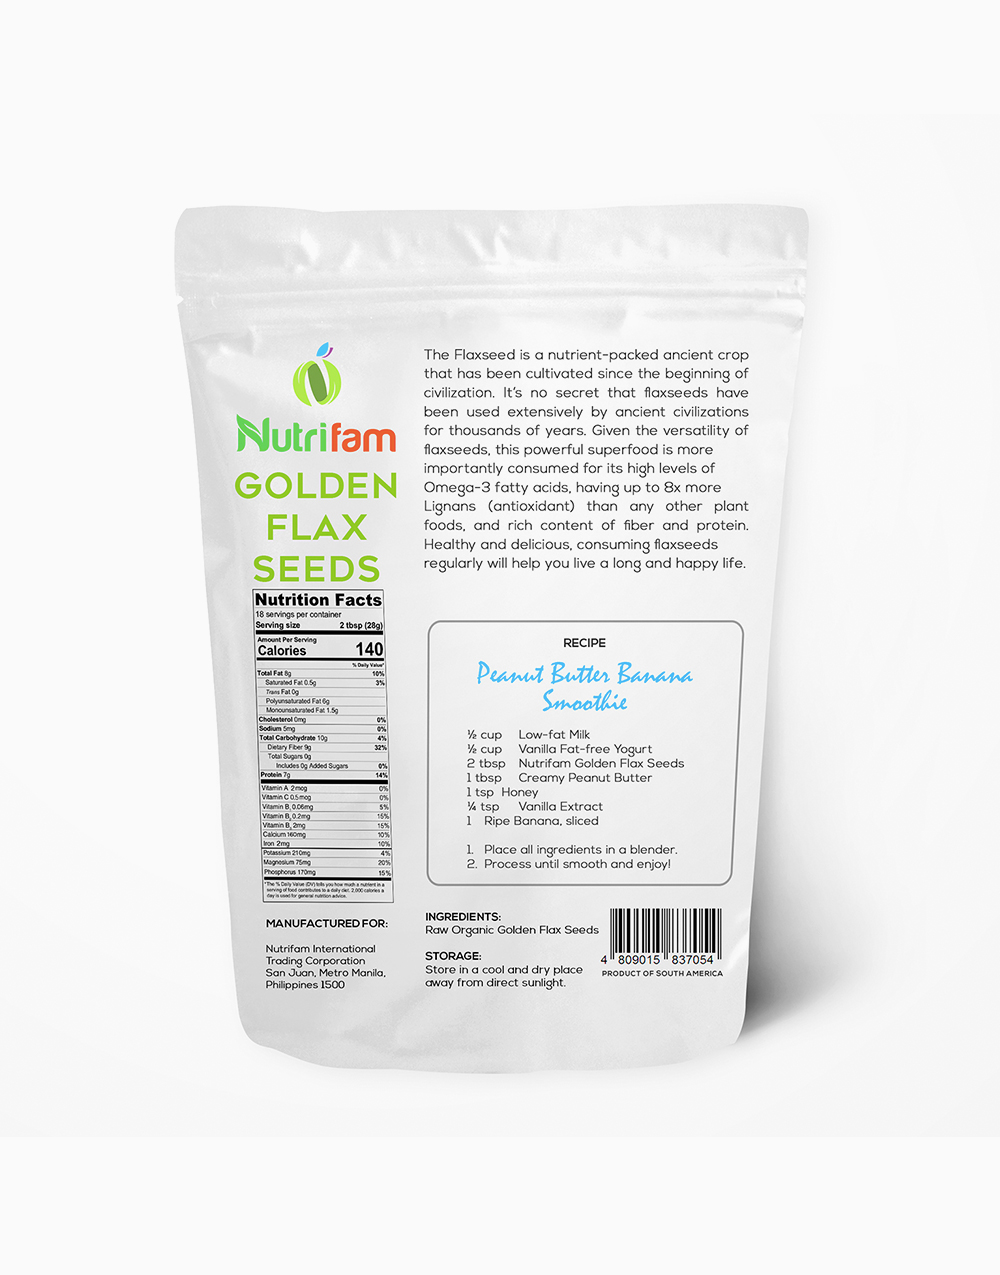 Nutrifam Organic Golden Flax Seeds (500g) by Nutrifam